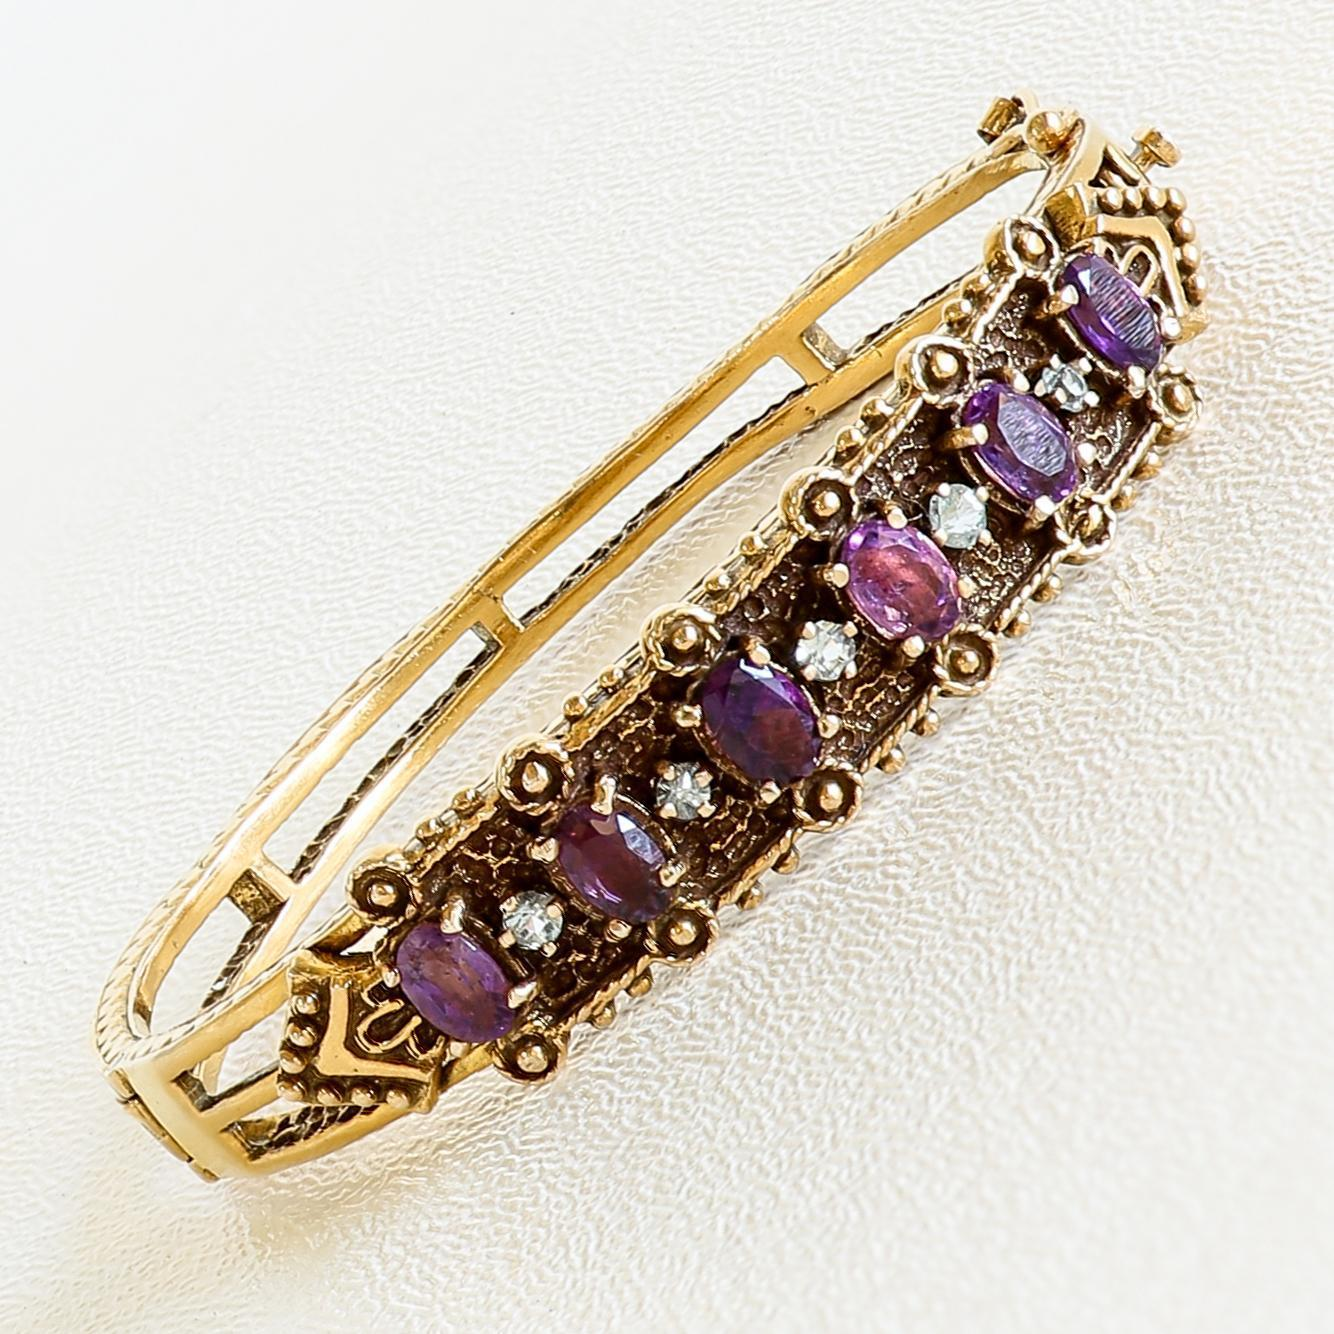 Lady's Vintage 14K Amethyst & Tourmaline Bangle Bracelet